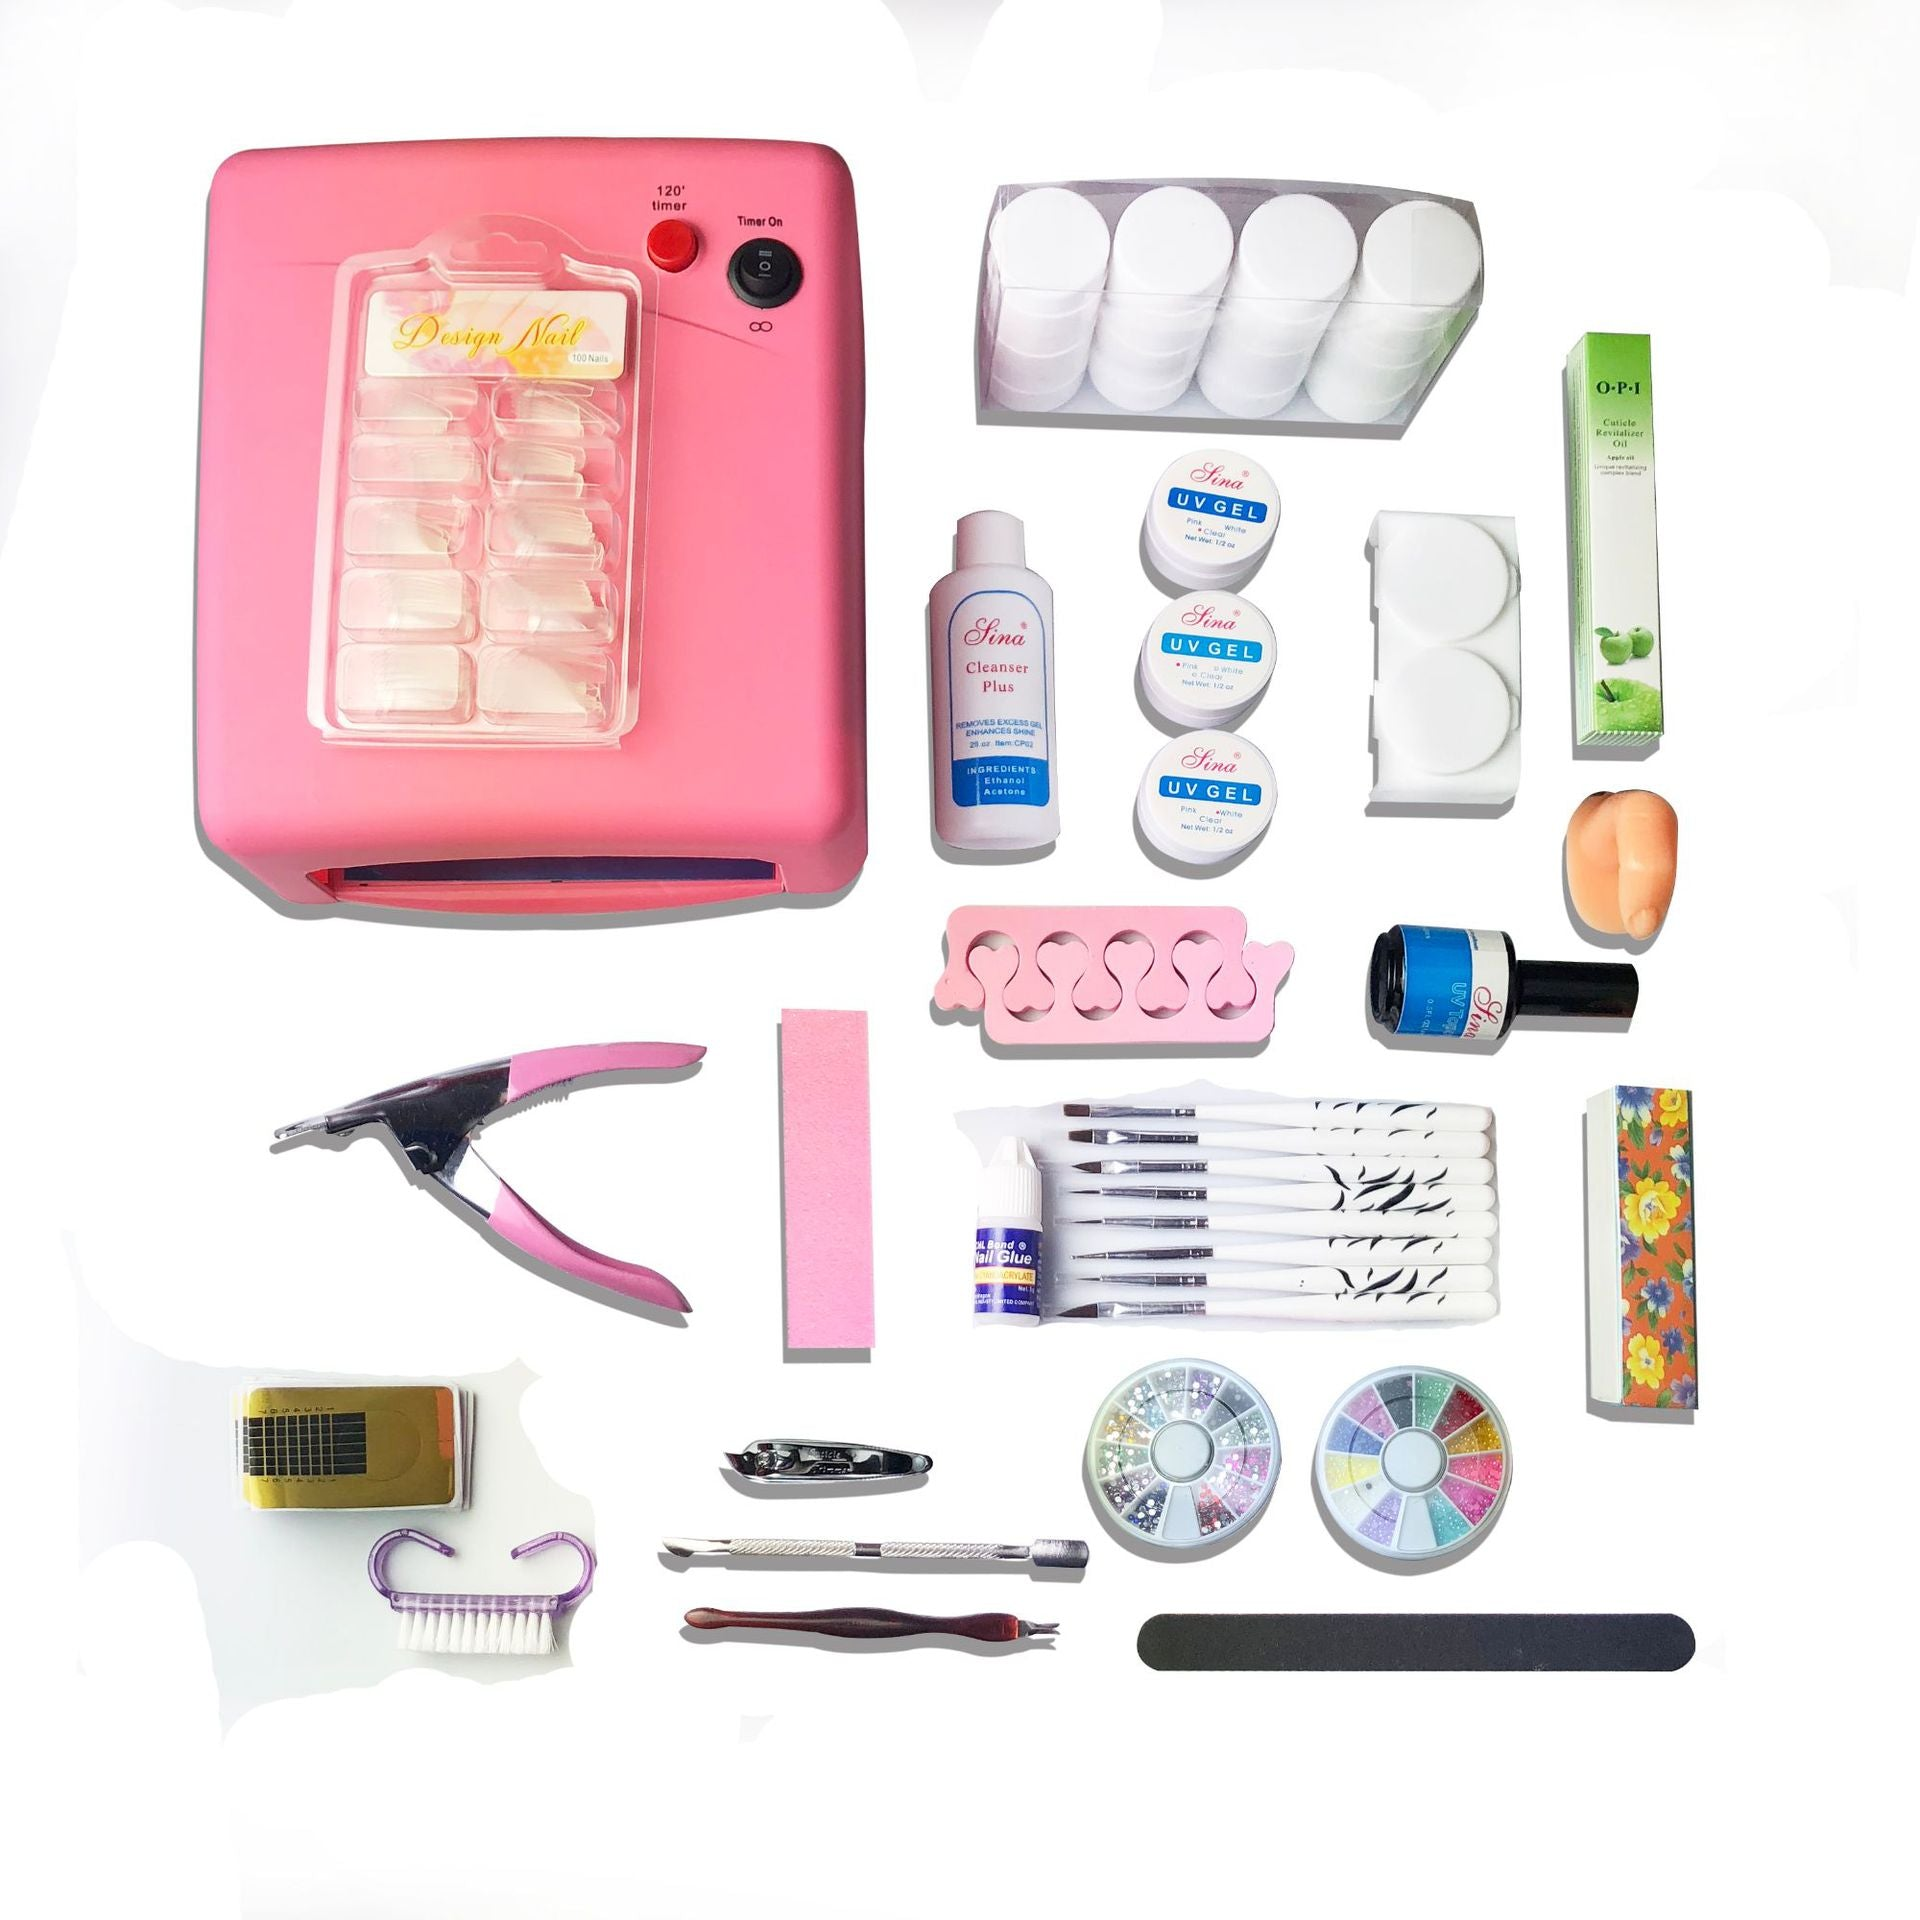 Beginner's special UV light therapy set